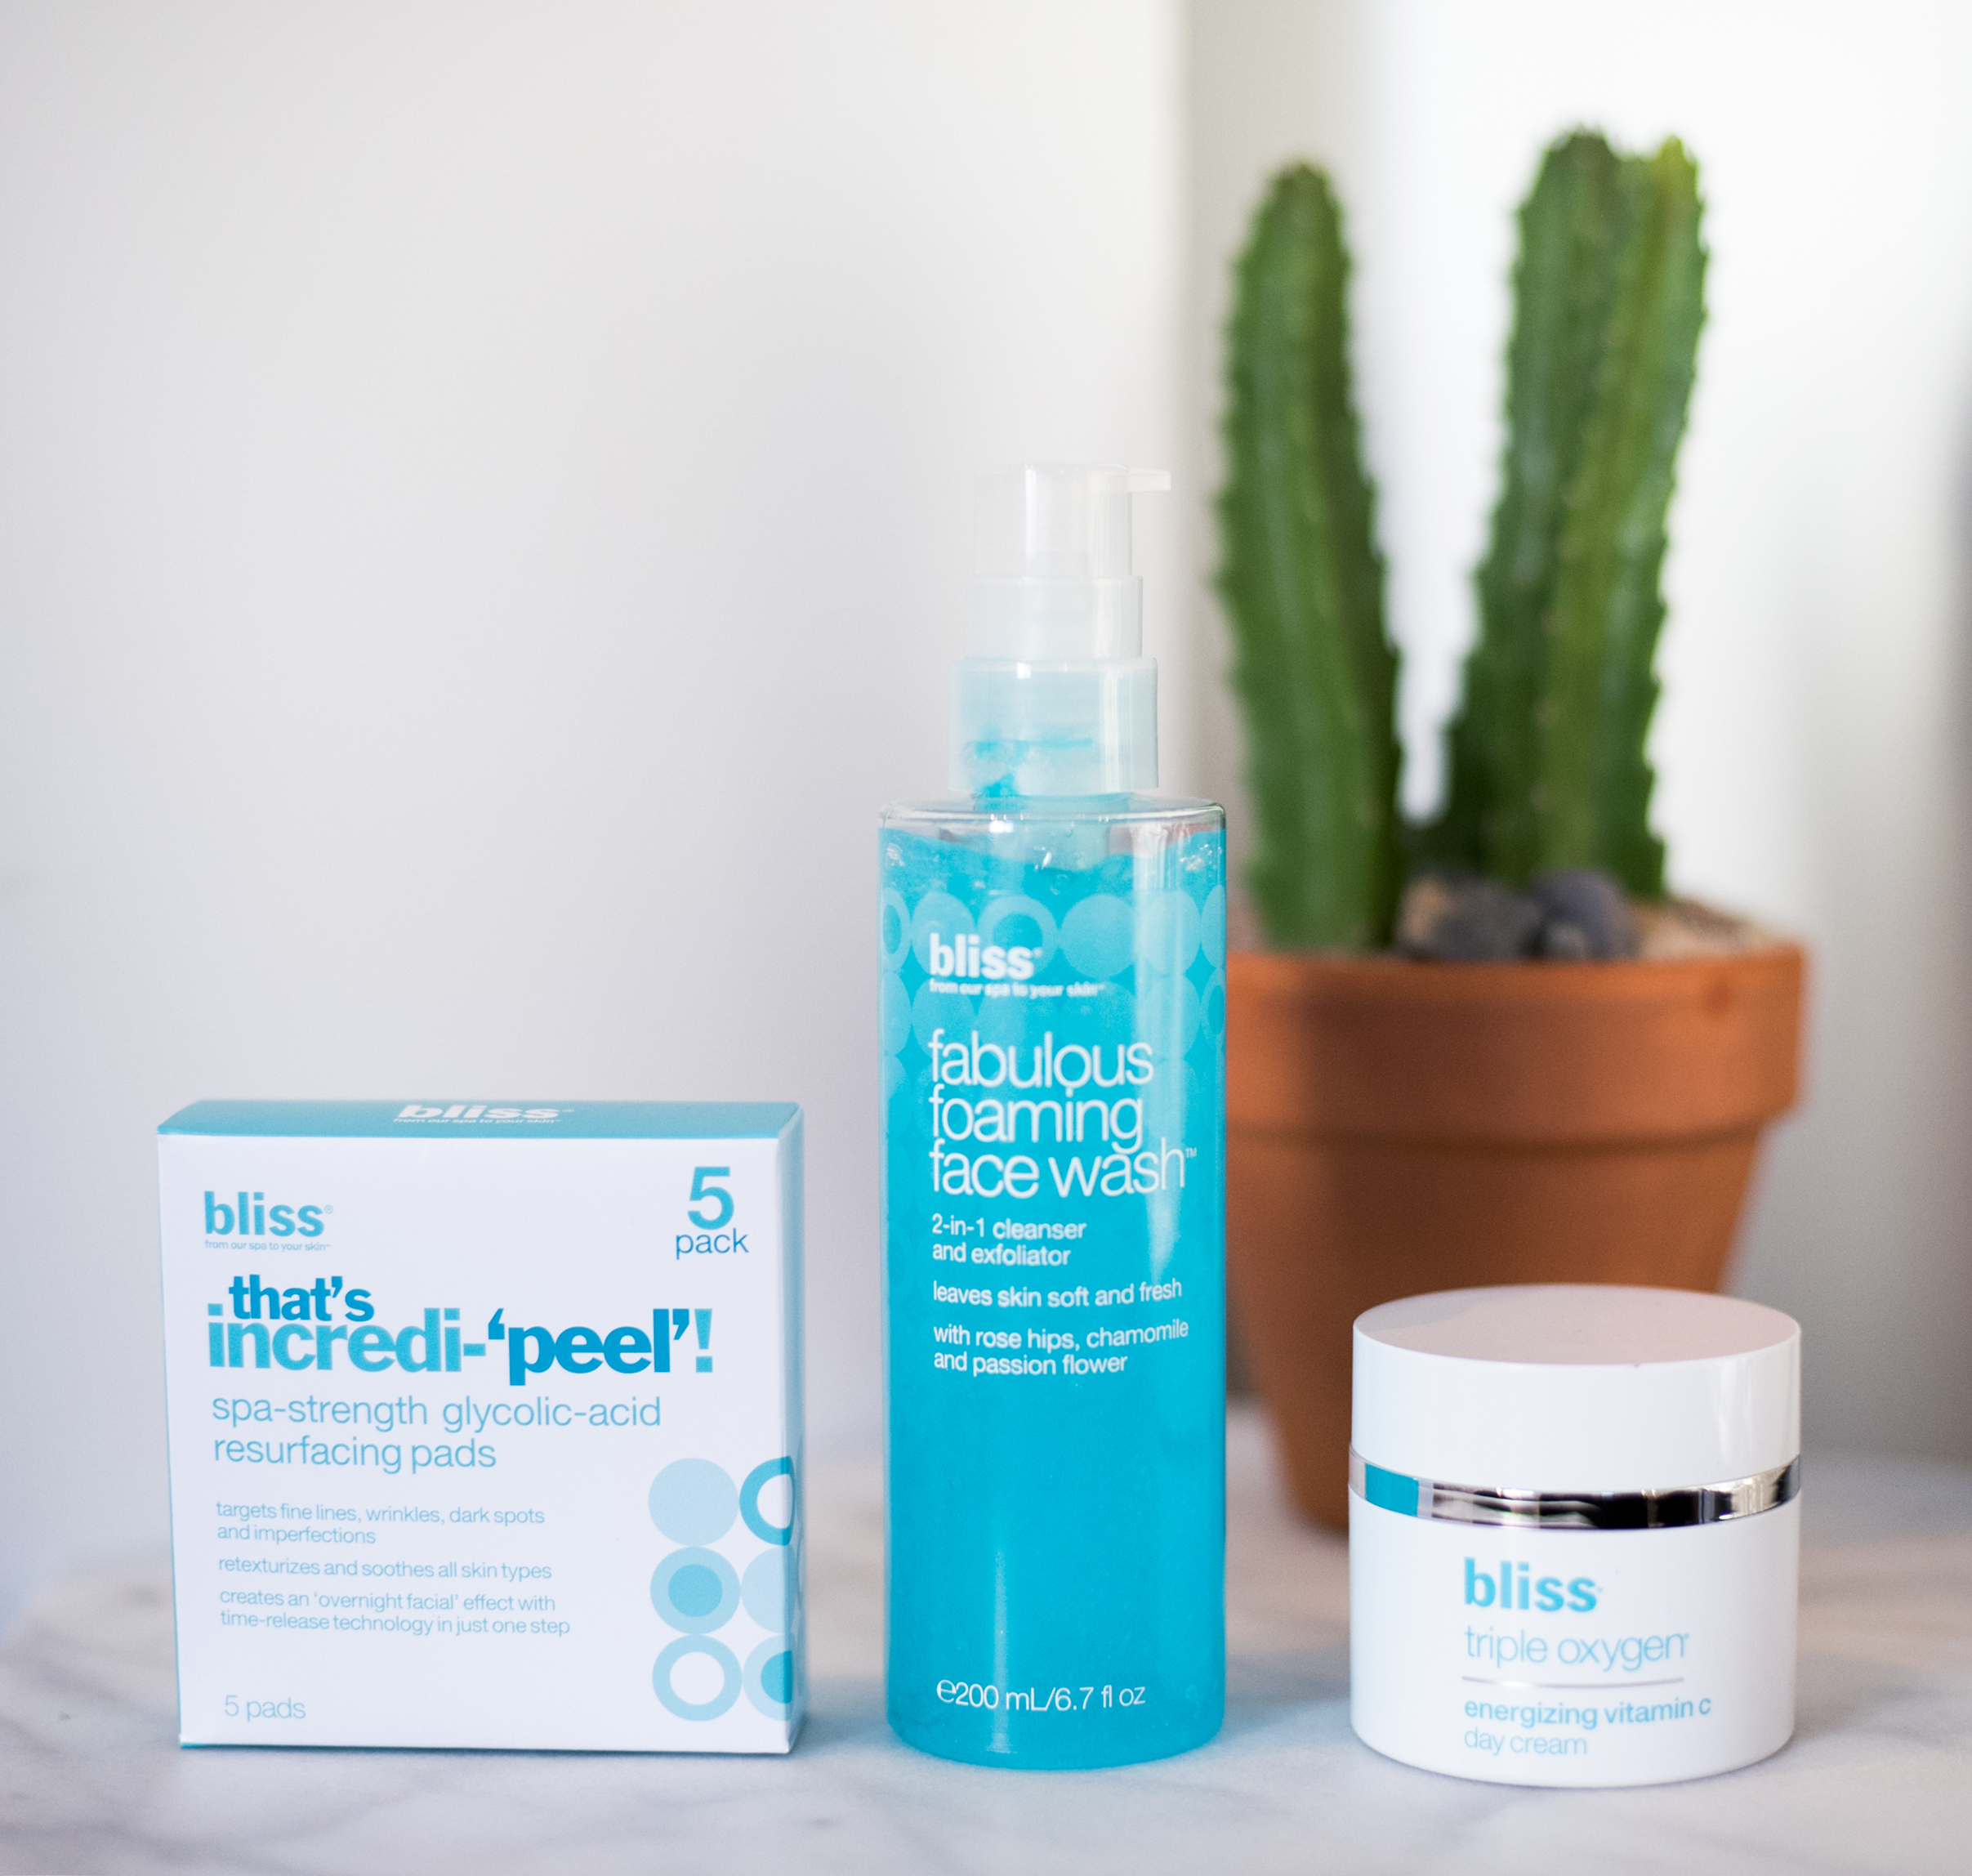 bliss-facial-at-home-review-raquel-paiva